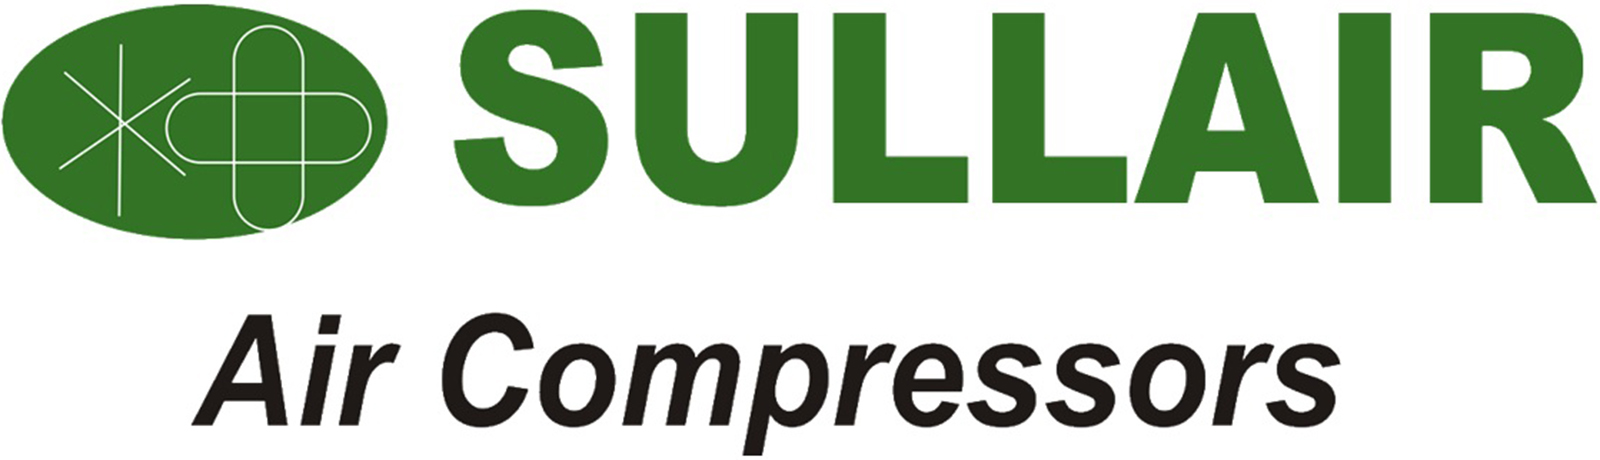 http://million-base.com/wp-content/uploads/2015/04/14-Sullair-Logo.jpg